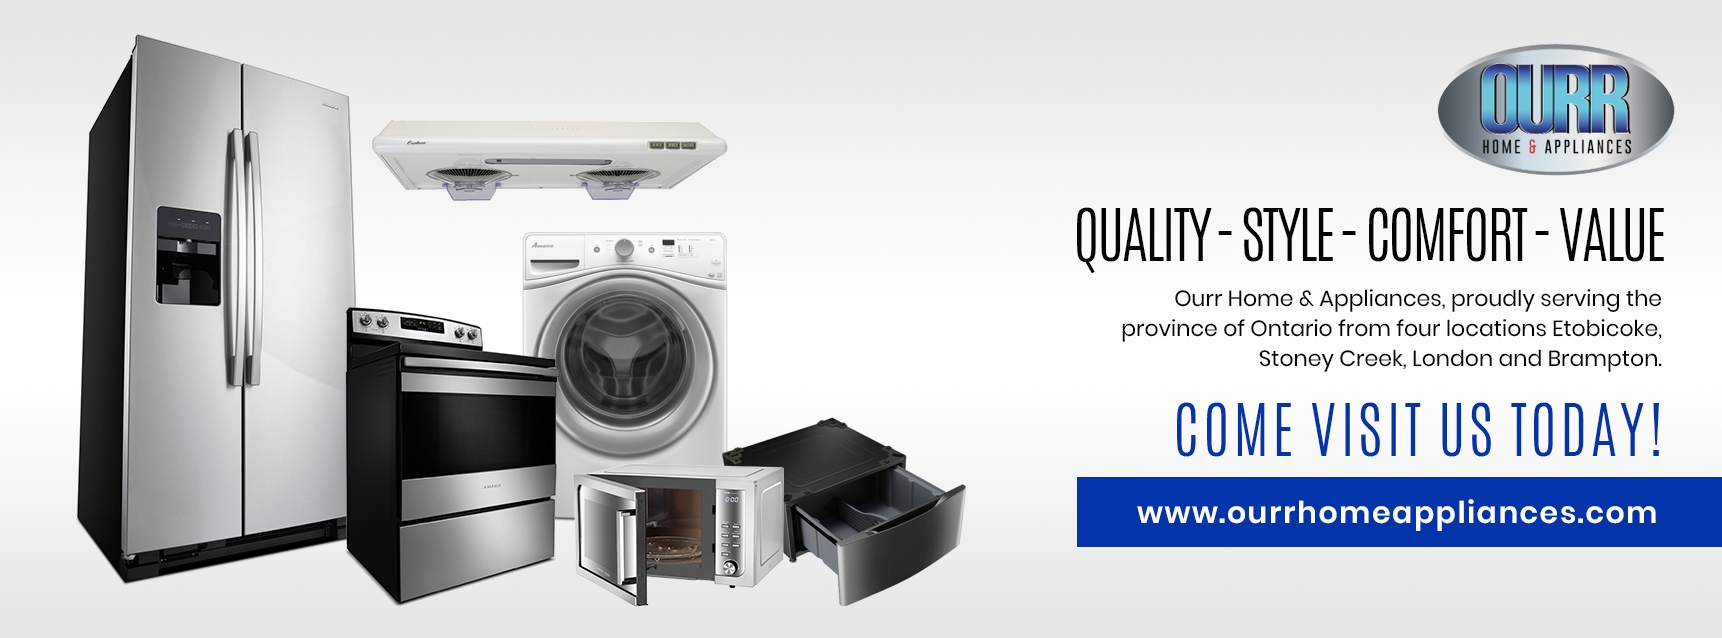 Ourr Home & Appliances (@ourrhomeappliances) Cover Image